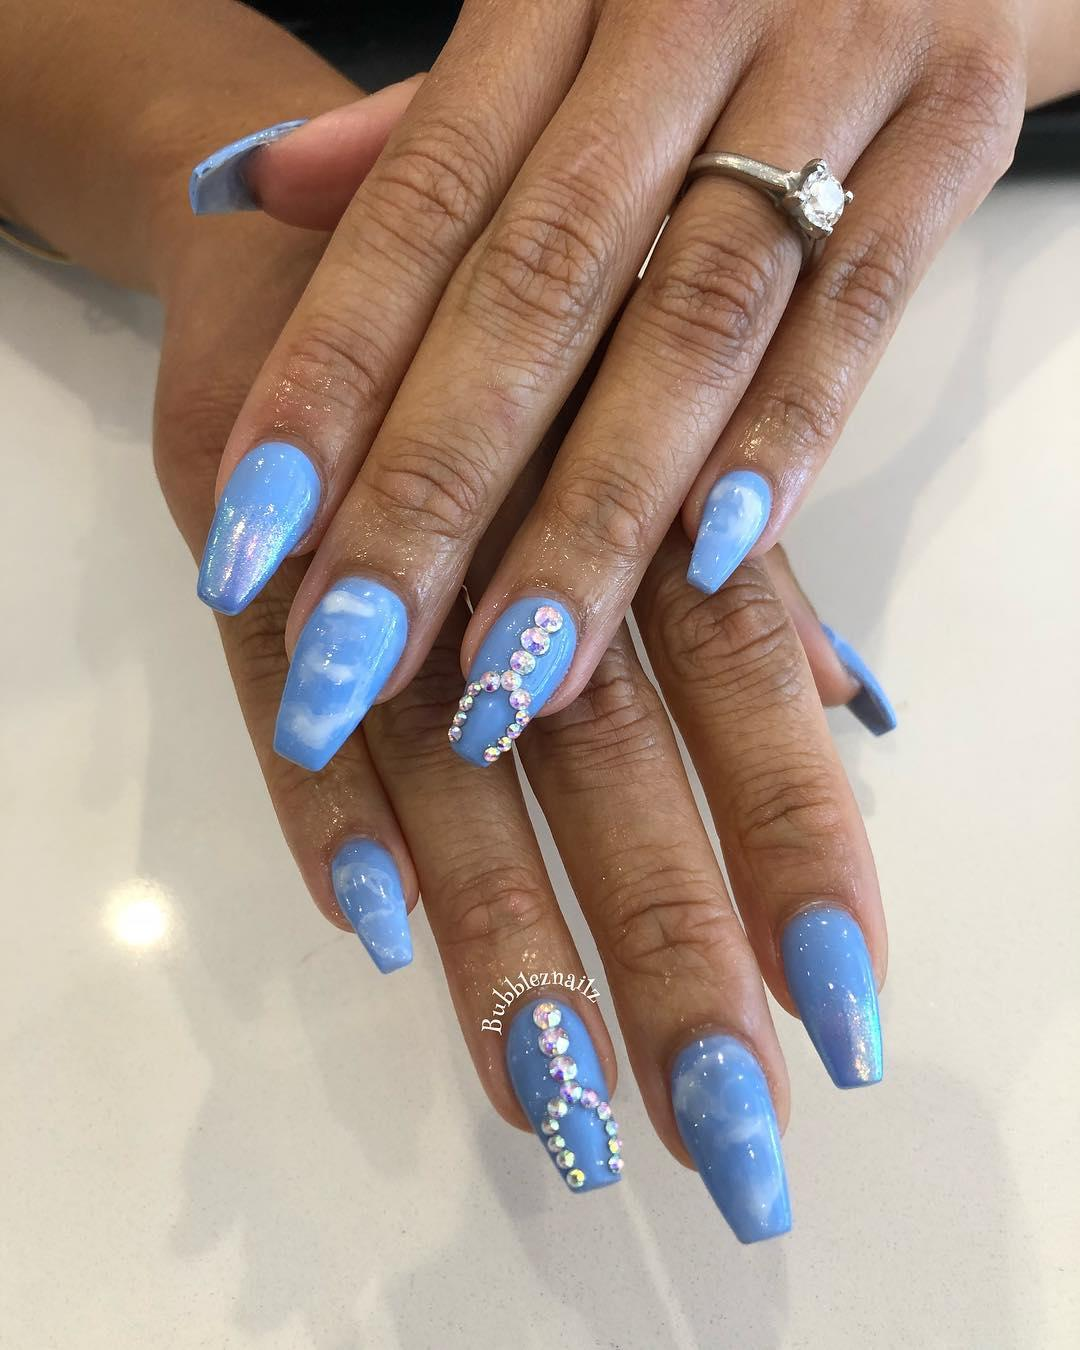 best nail designs photos for 2019 10 - Best Nail Designs Photos for 2019